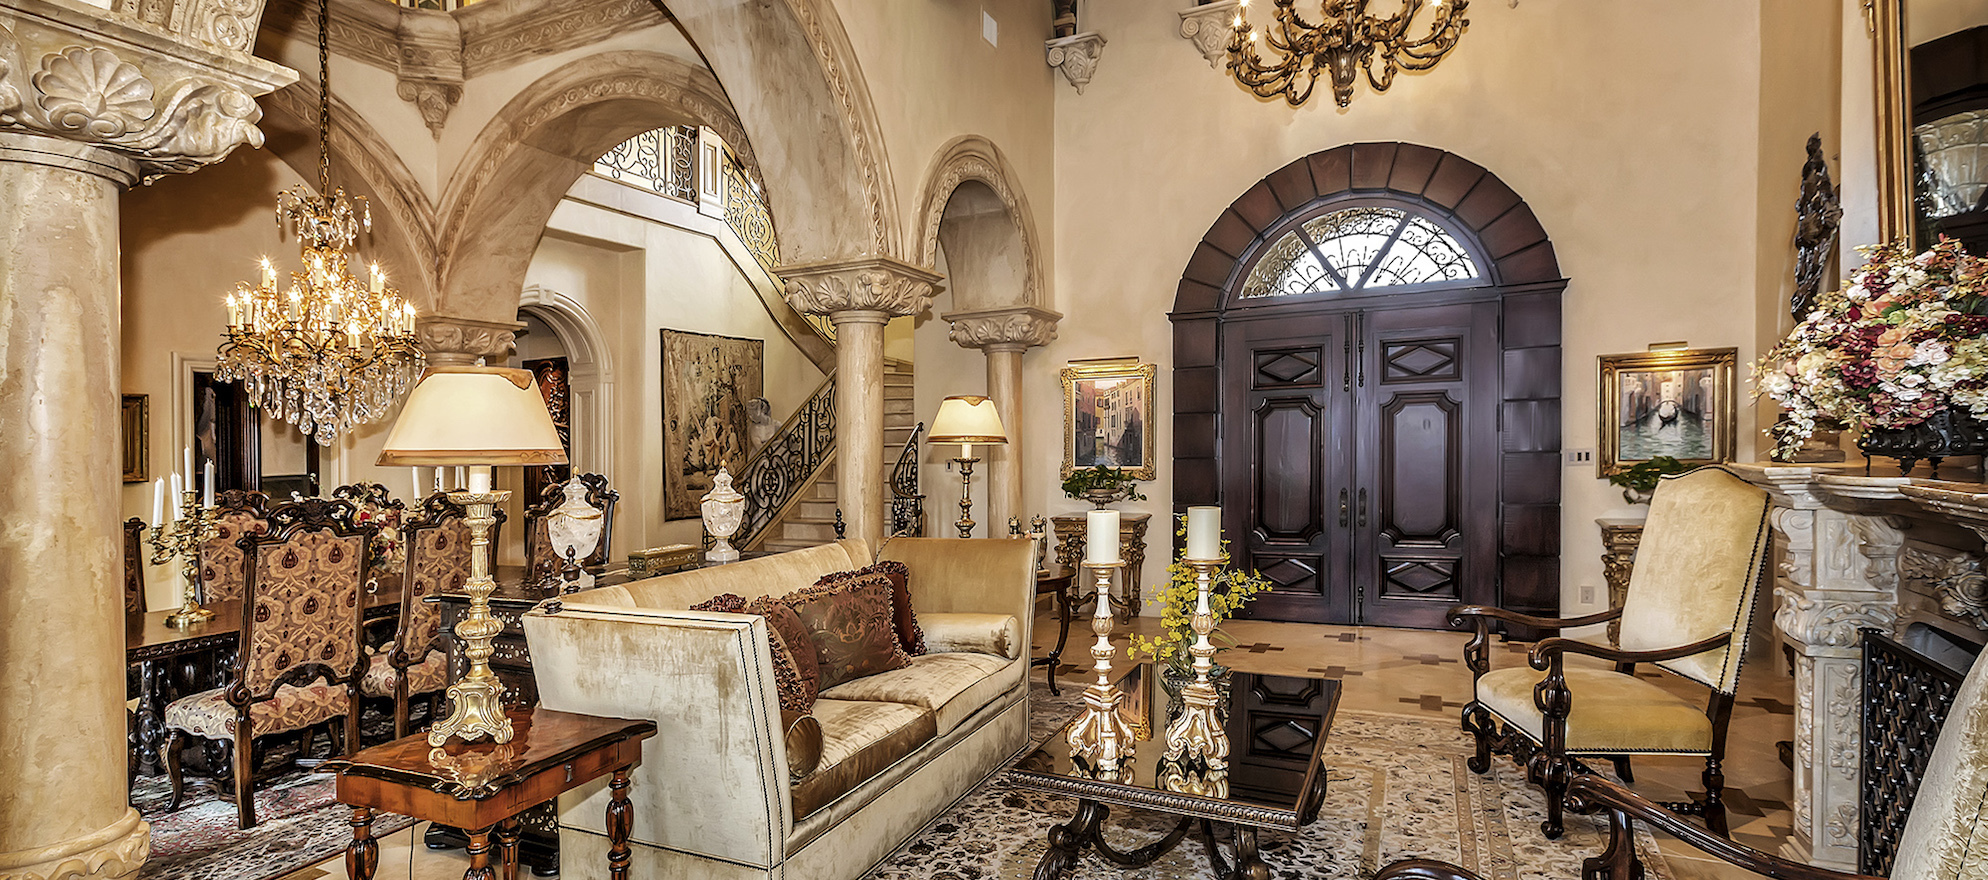 Luxury listing: Opulent Mediterranean-style 'palace'